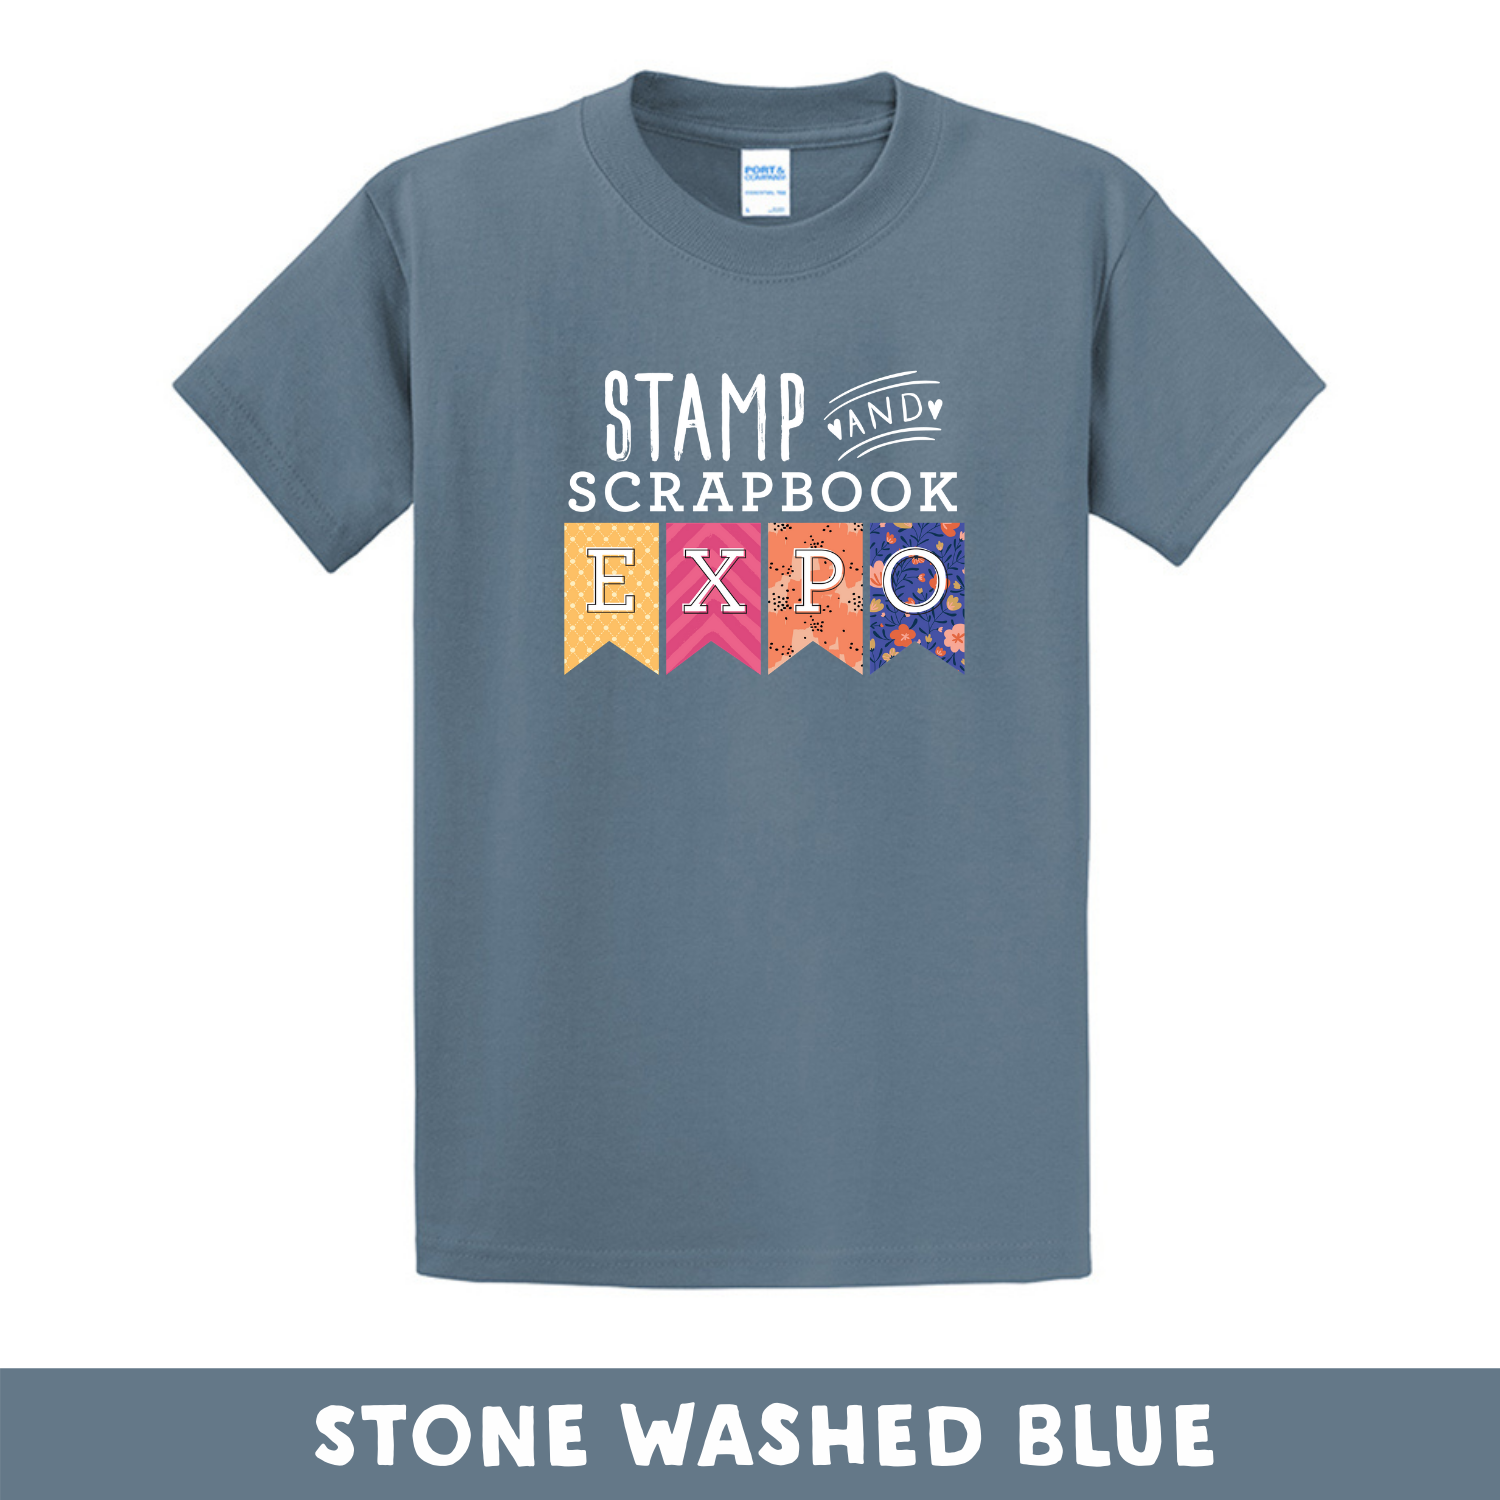 Stone Washed Blue - Crew Neck Unisex T-Shirt - Stamp & Scrapbook Expo Color Logo